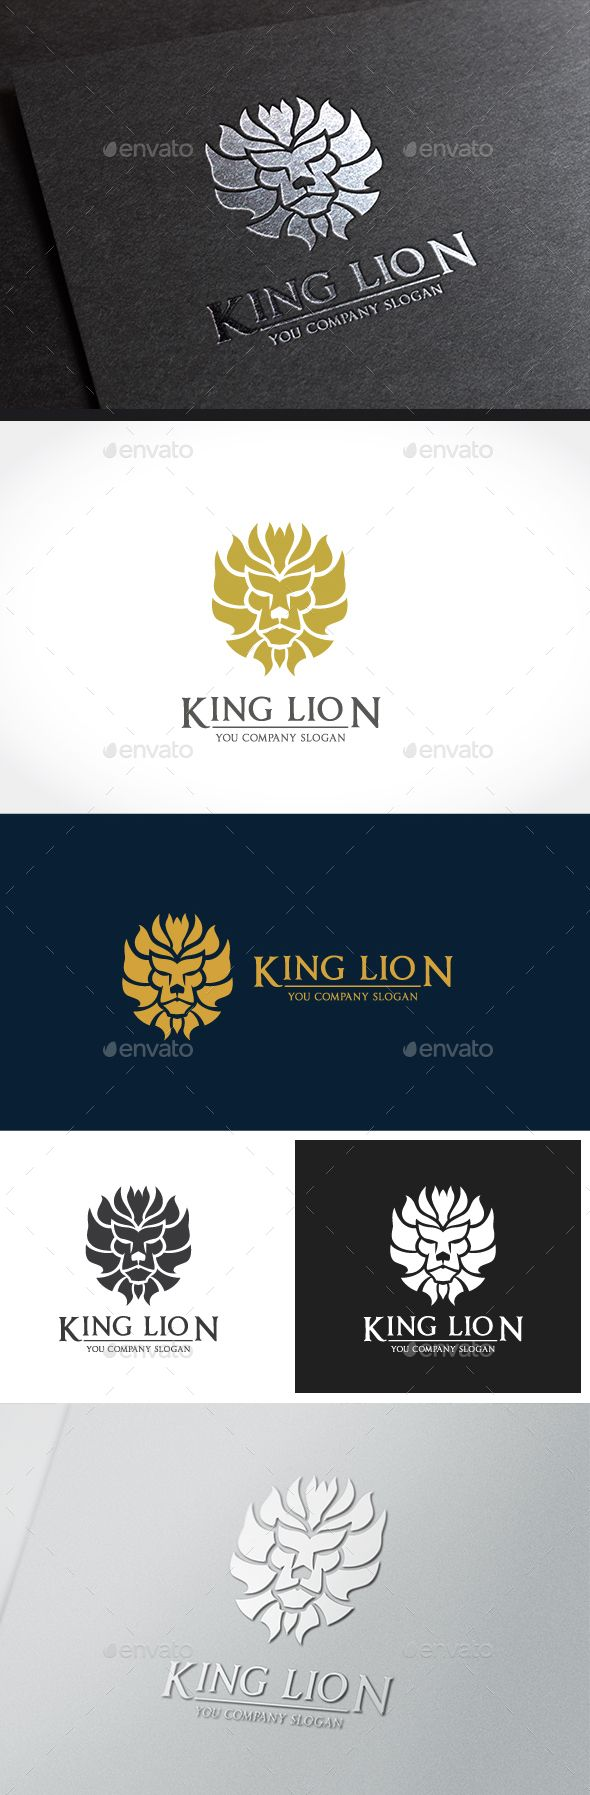 King Lion Logo Design Template Vector #logotype Download it here: http://graphicriver.net/item/king-lion/14277010?s_rank=1697?ref=nexion